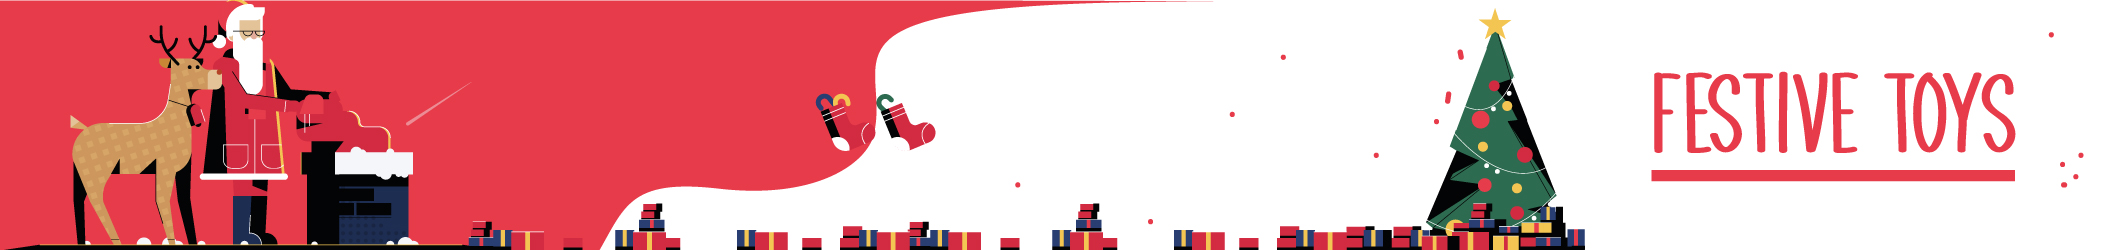 Festive Toys landing page banner